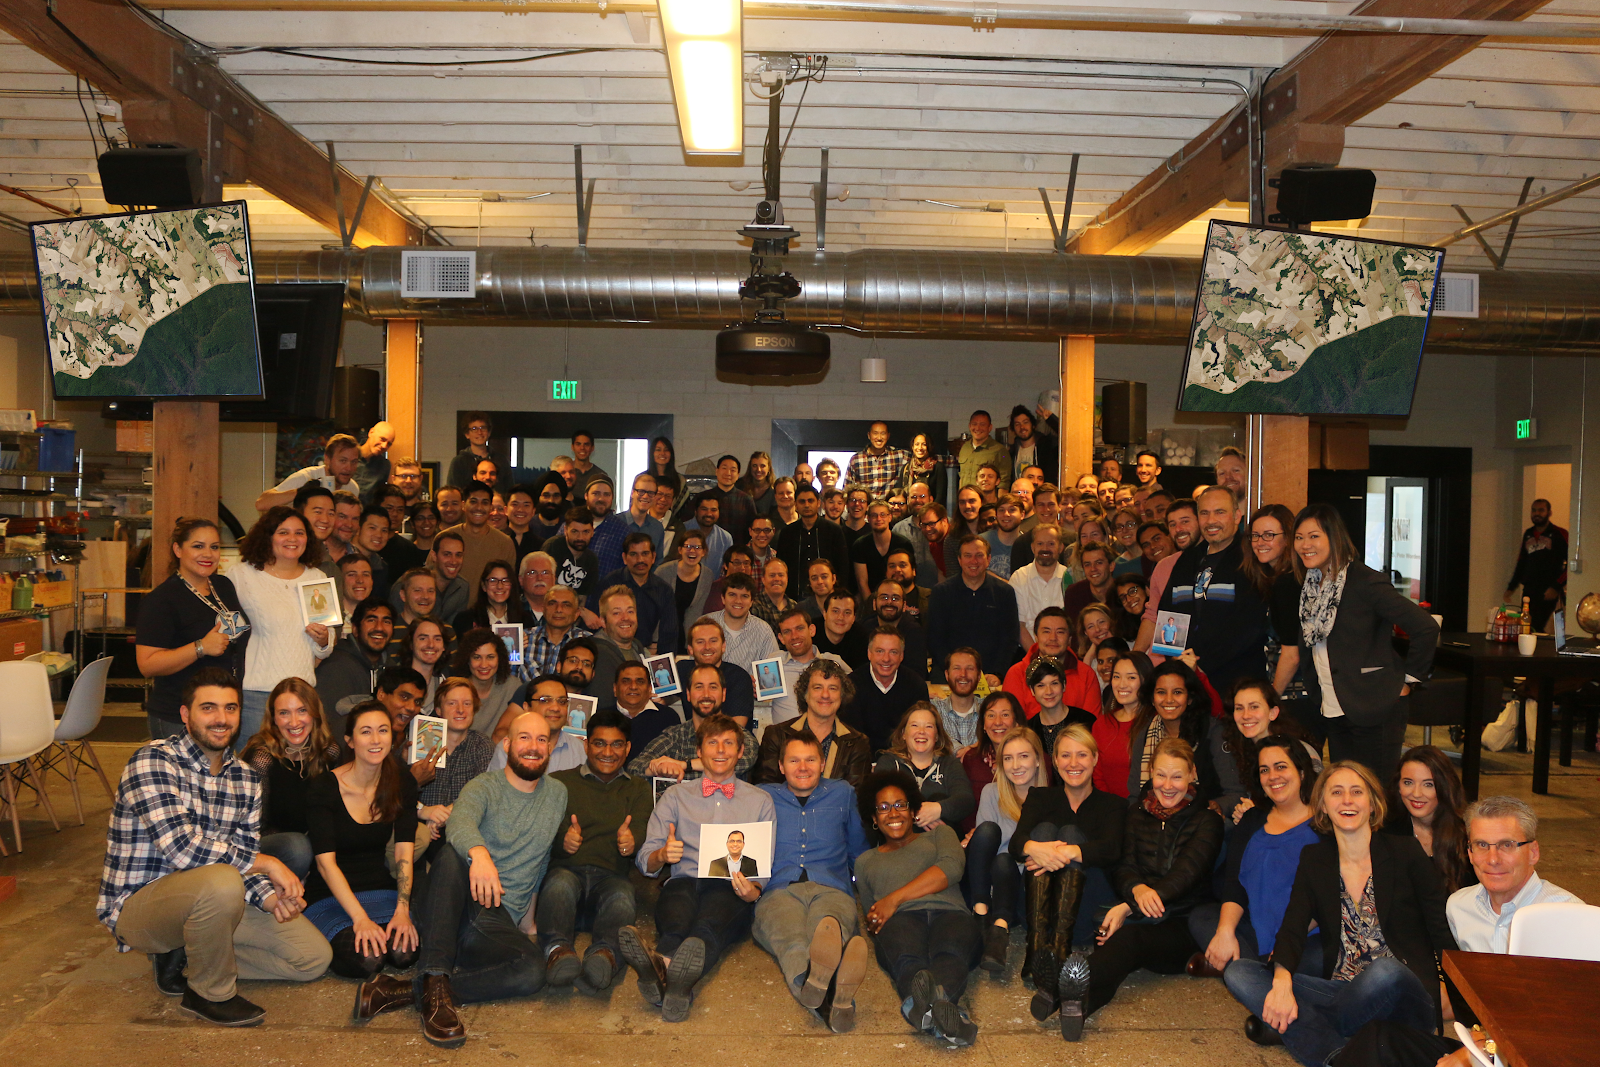 Planeteers bid farewell to Flock 3p on shipment day. © 2020, Planet Labs Inc. All Rights Reserved.